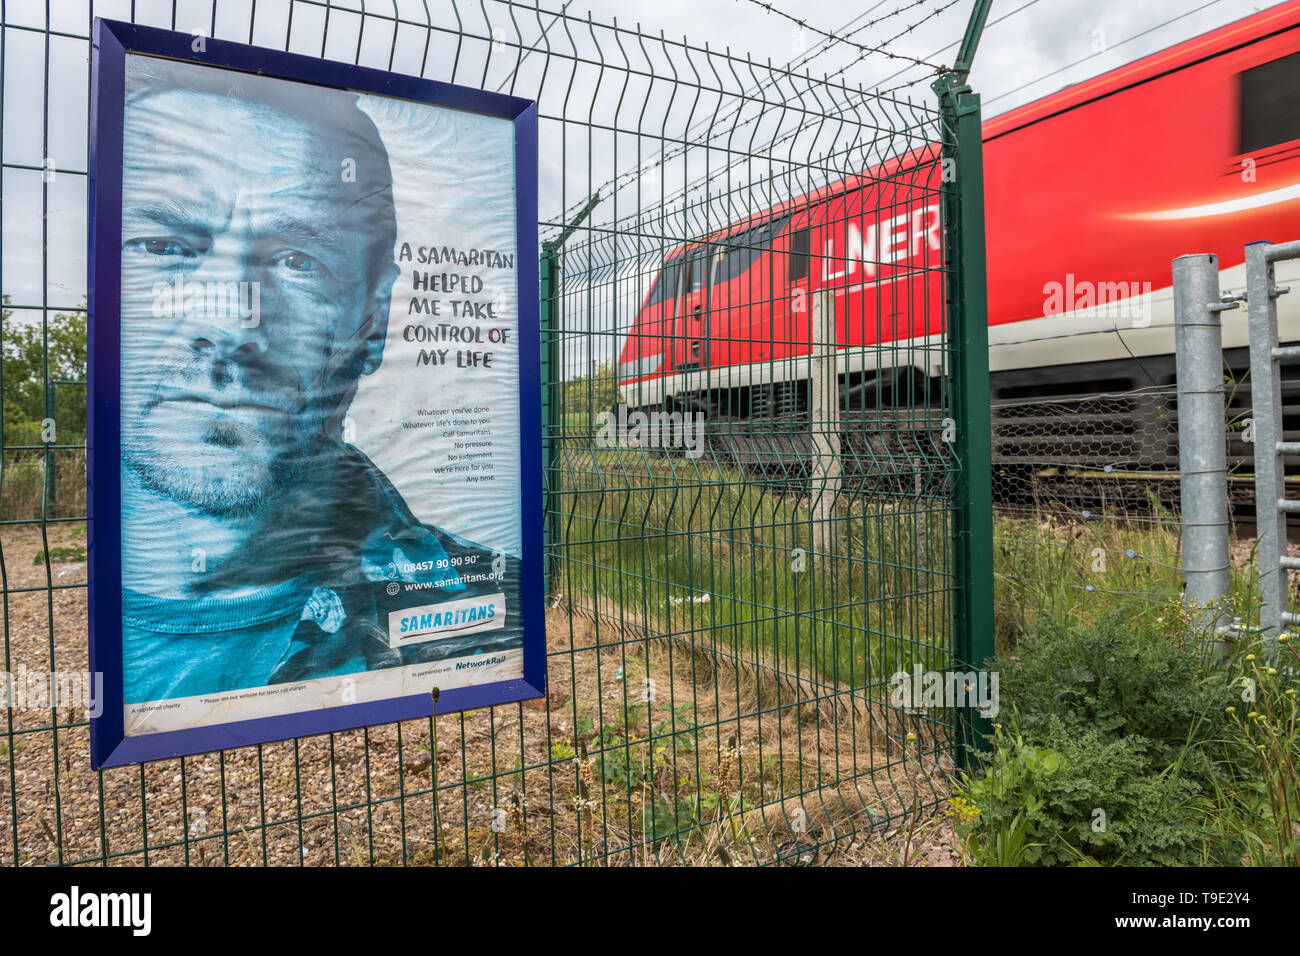 Samaritans poster 'a Samaritan helped me take control of my life' at a level crossing footpath on the East Coast Main Line railway. Stock Photo